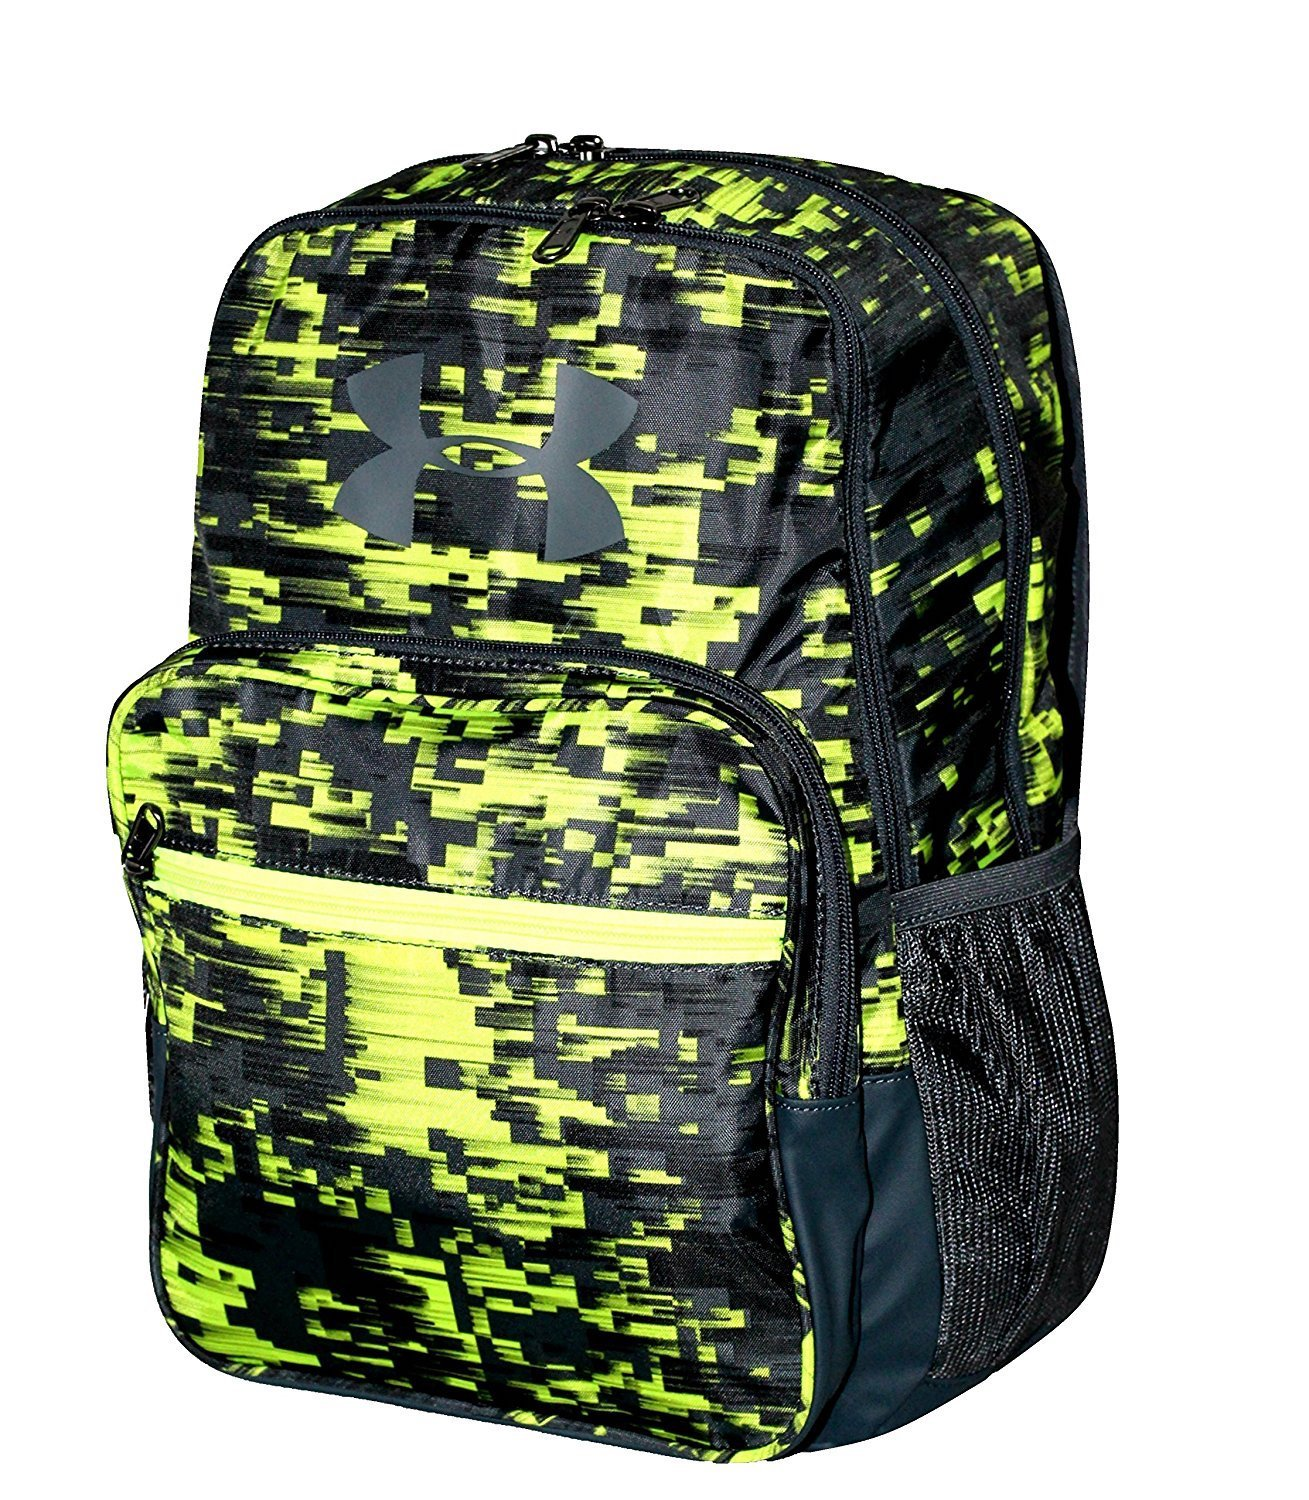 ce8e6bd3b21a Amazon.com  Under Armour HOF Youth Boys Athletic Multi purpose School  Backpack (Black green grey)  Clothing